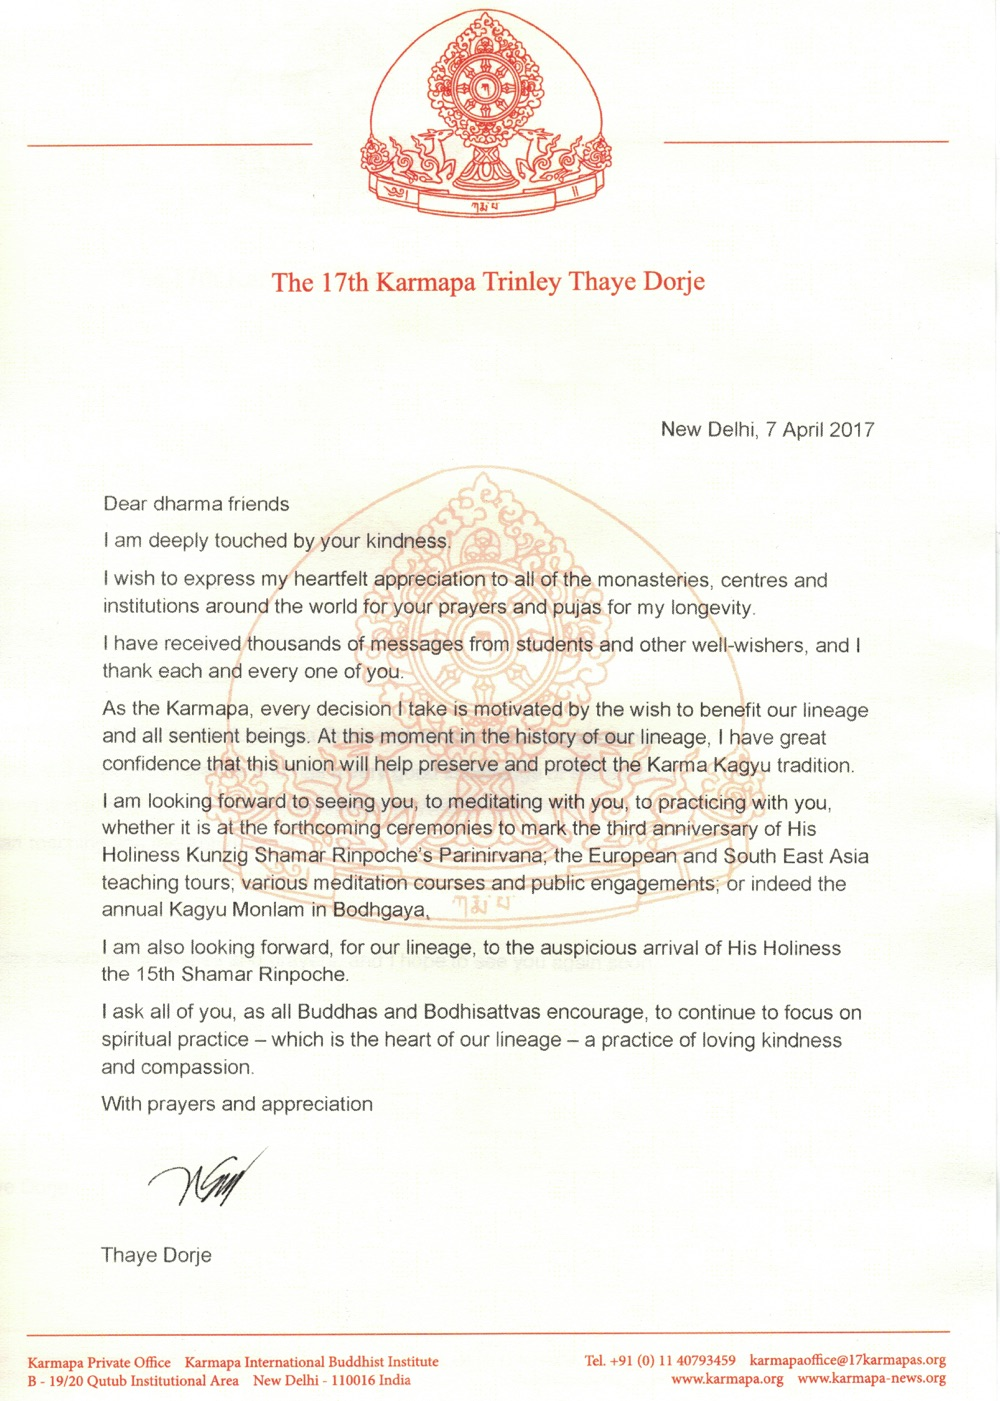 Letter Of Appreciation From Thaye Dorje, His Holiness The 17th Gyalwa  Karmapa  Appreciation Letter